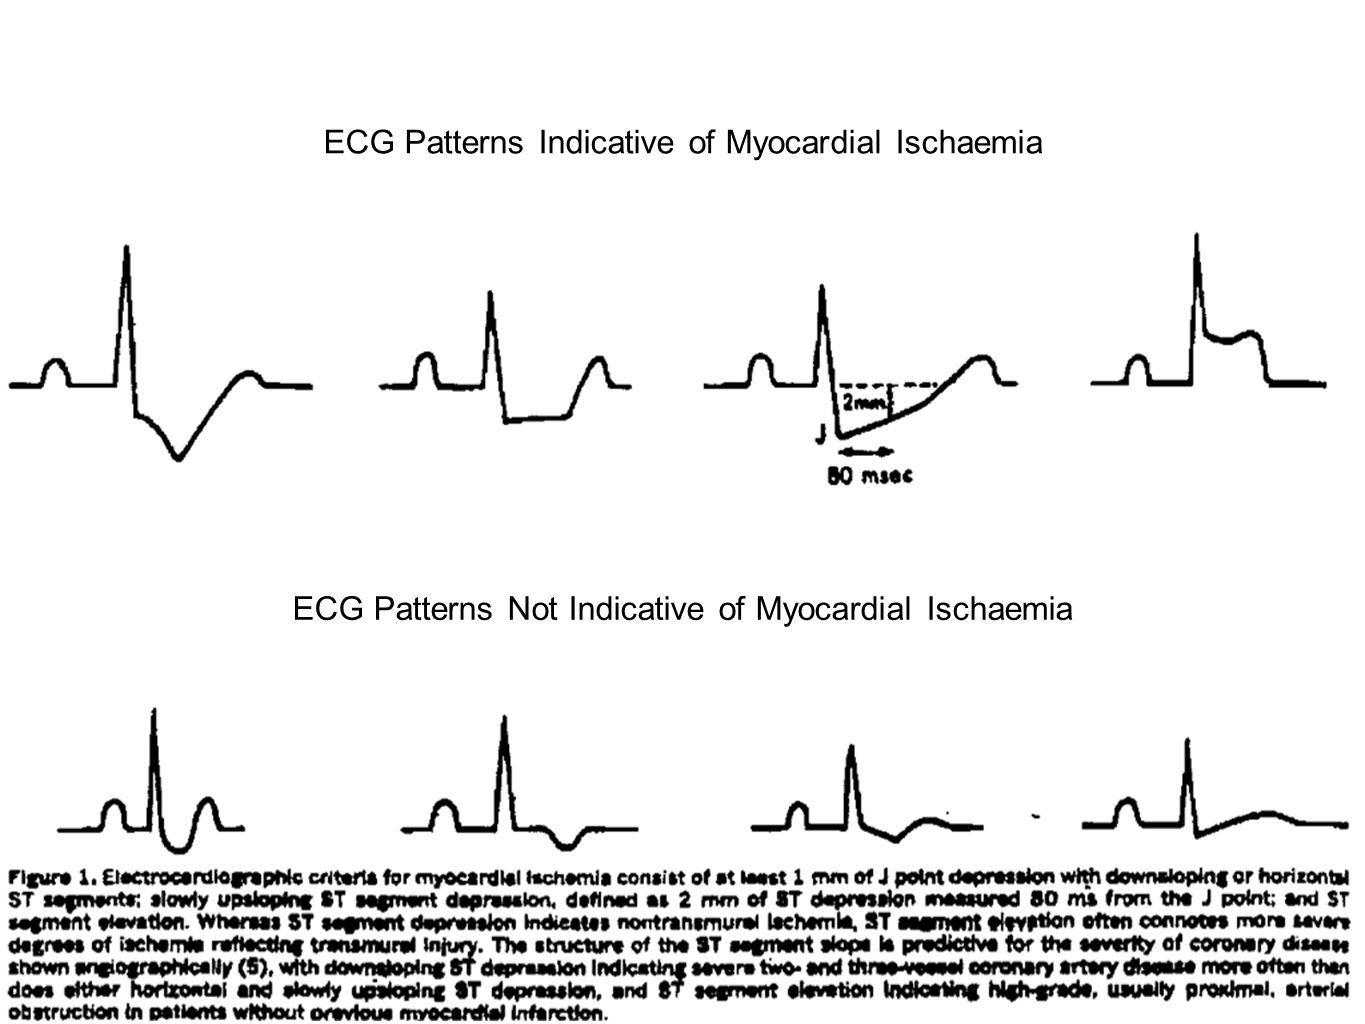 ECG Patterns Indicative of Myocardial Ischaemia